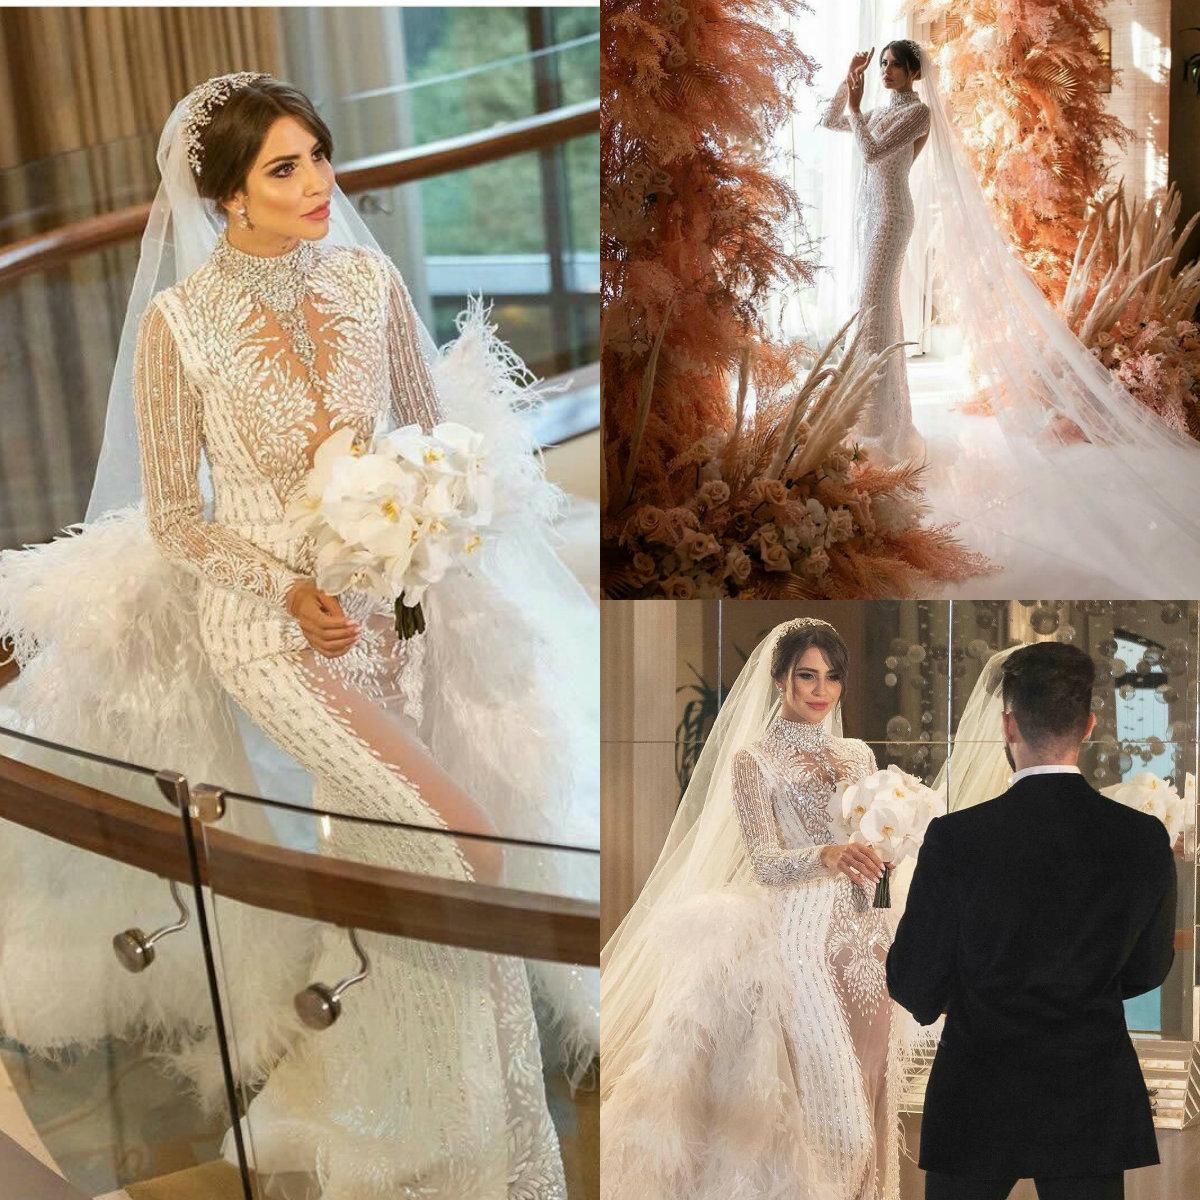 Feather Luxury Mermaid Wedding Dresses With Detachable Skirts Lace Crystal Long Sleeves Wedding Gowns High Neck Custom Made Robes De Mariee Knee Length Wedding Dress Mermaid Wedding Gown From Faiokaver 407 12 Dhgate Com